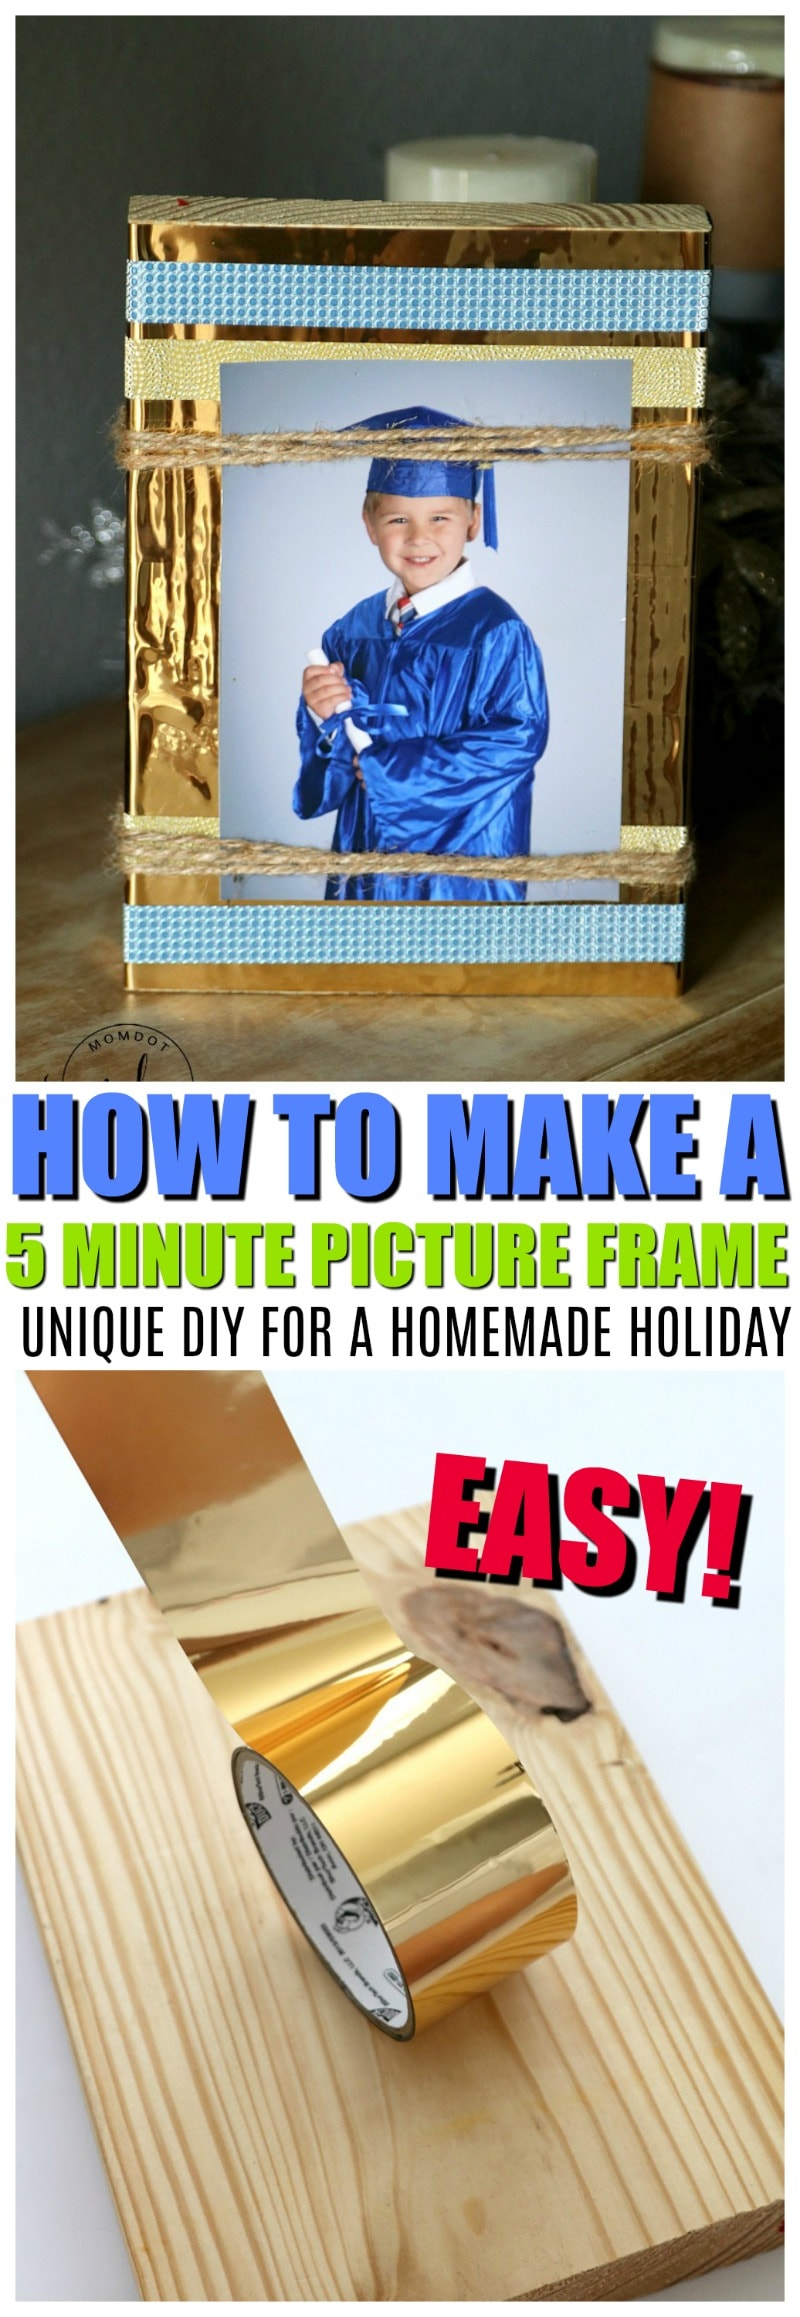 Fullsize Of How To Make A Frame